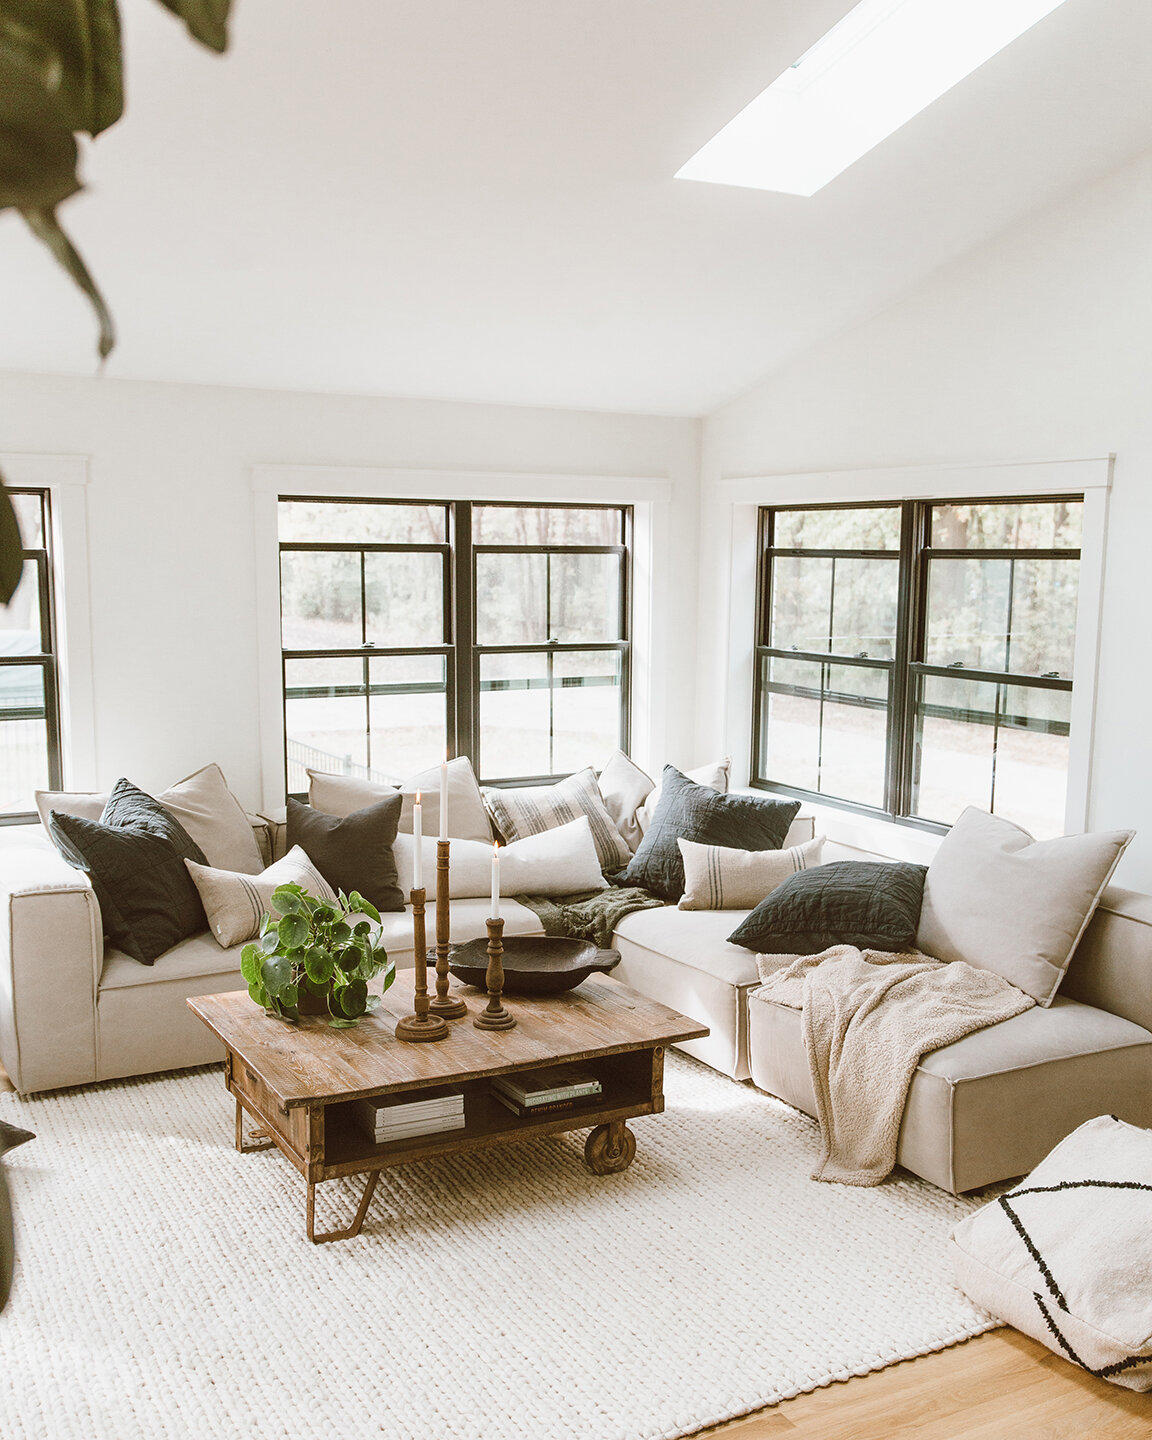 forthehome-great-room-04.jpg